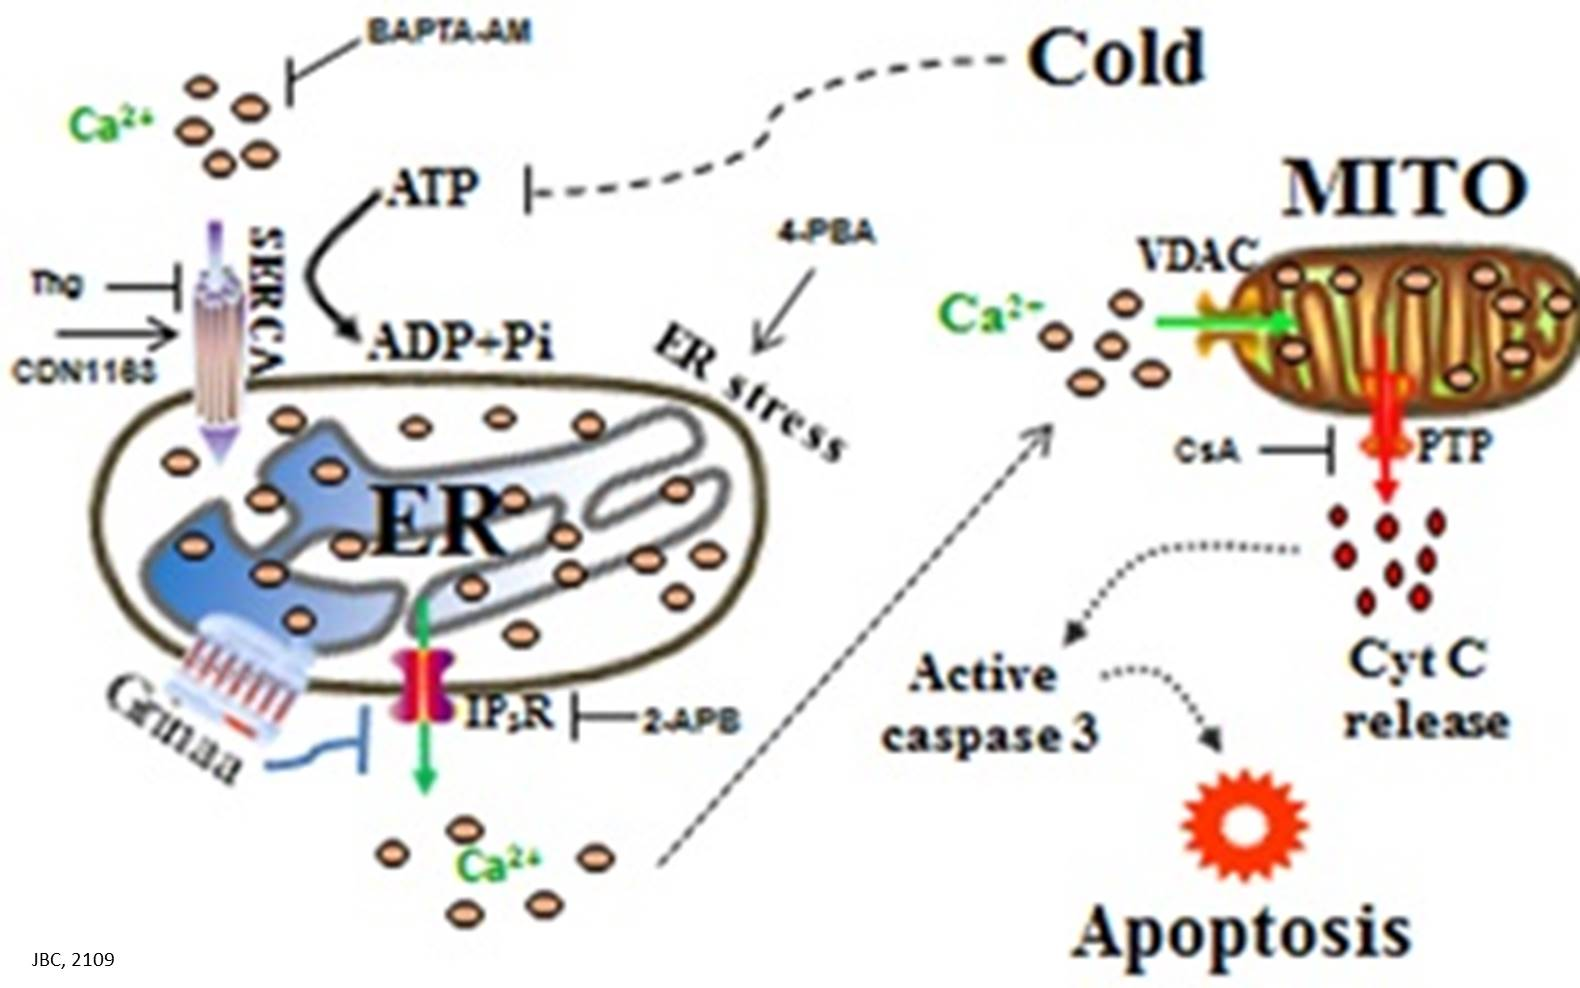 Intracellular Mechanisms of Cold-induced Apoptosis